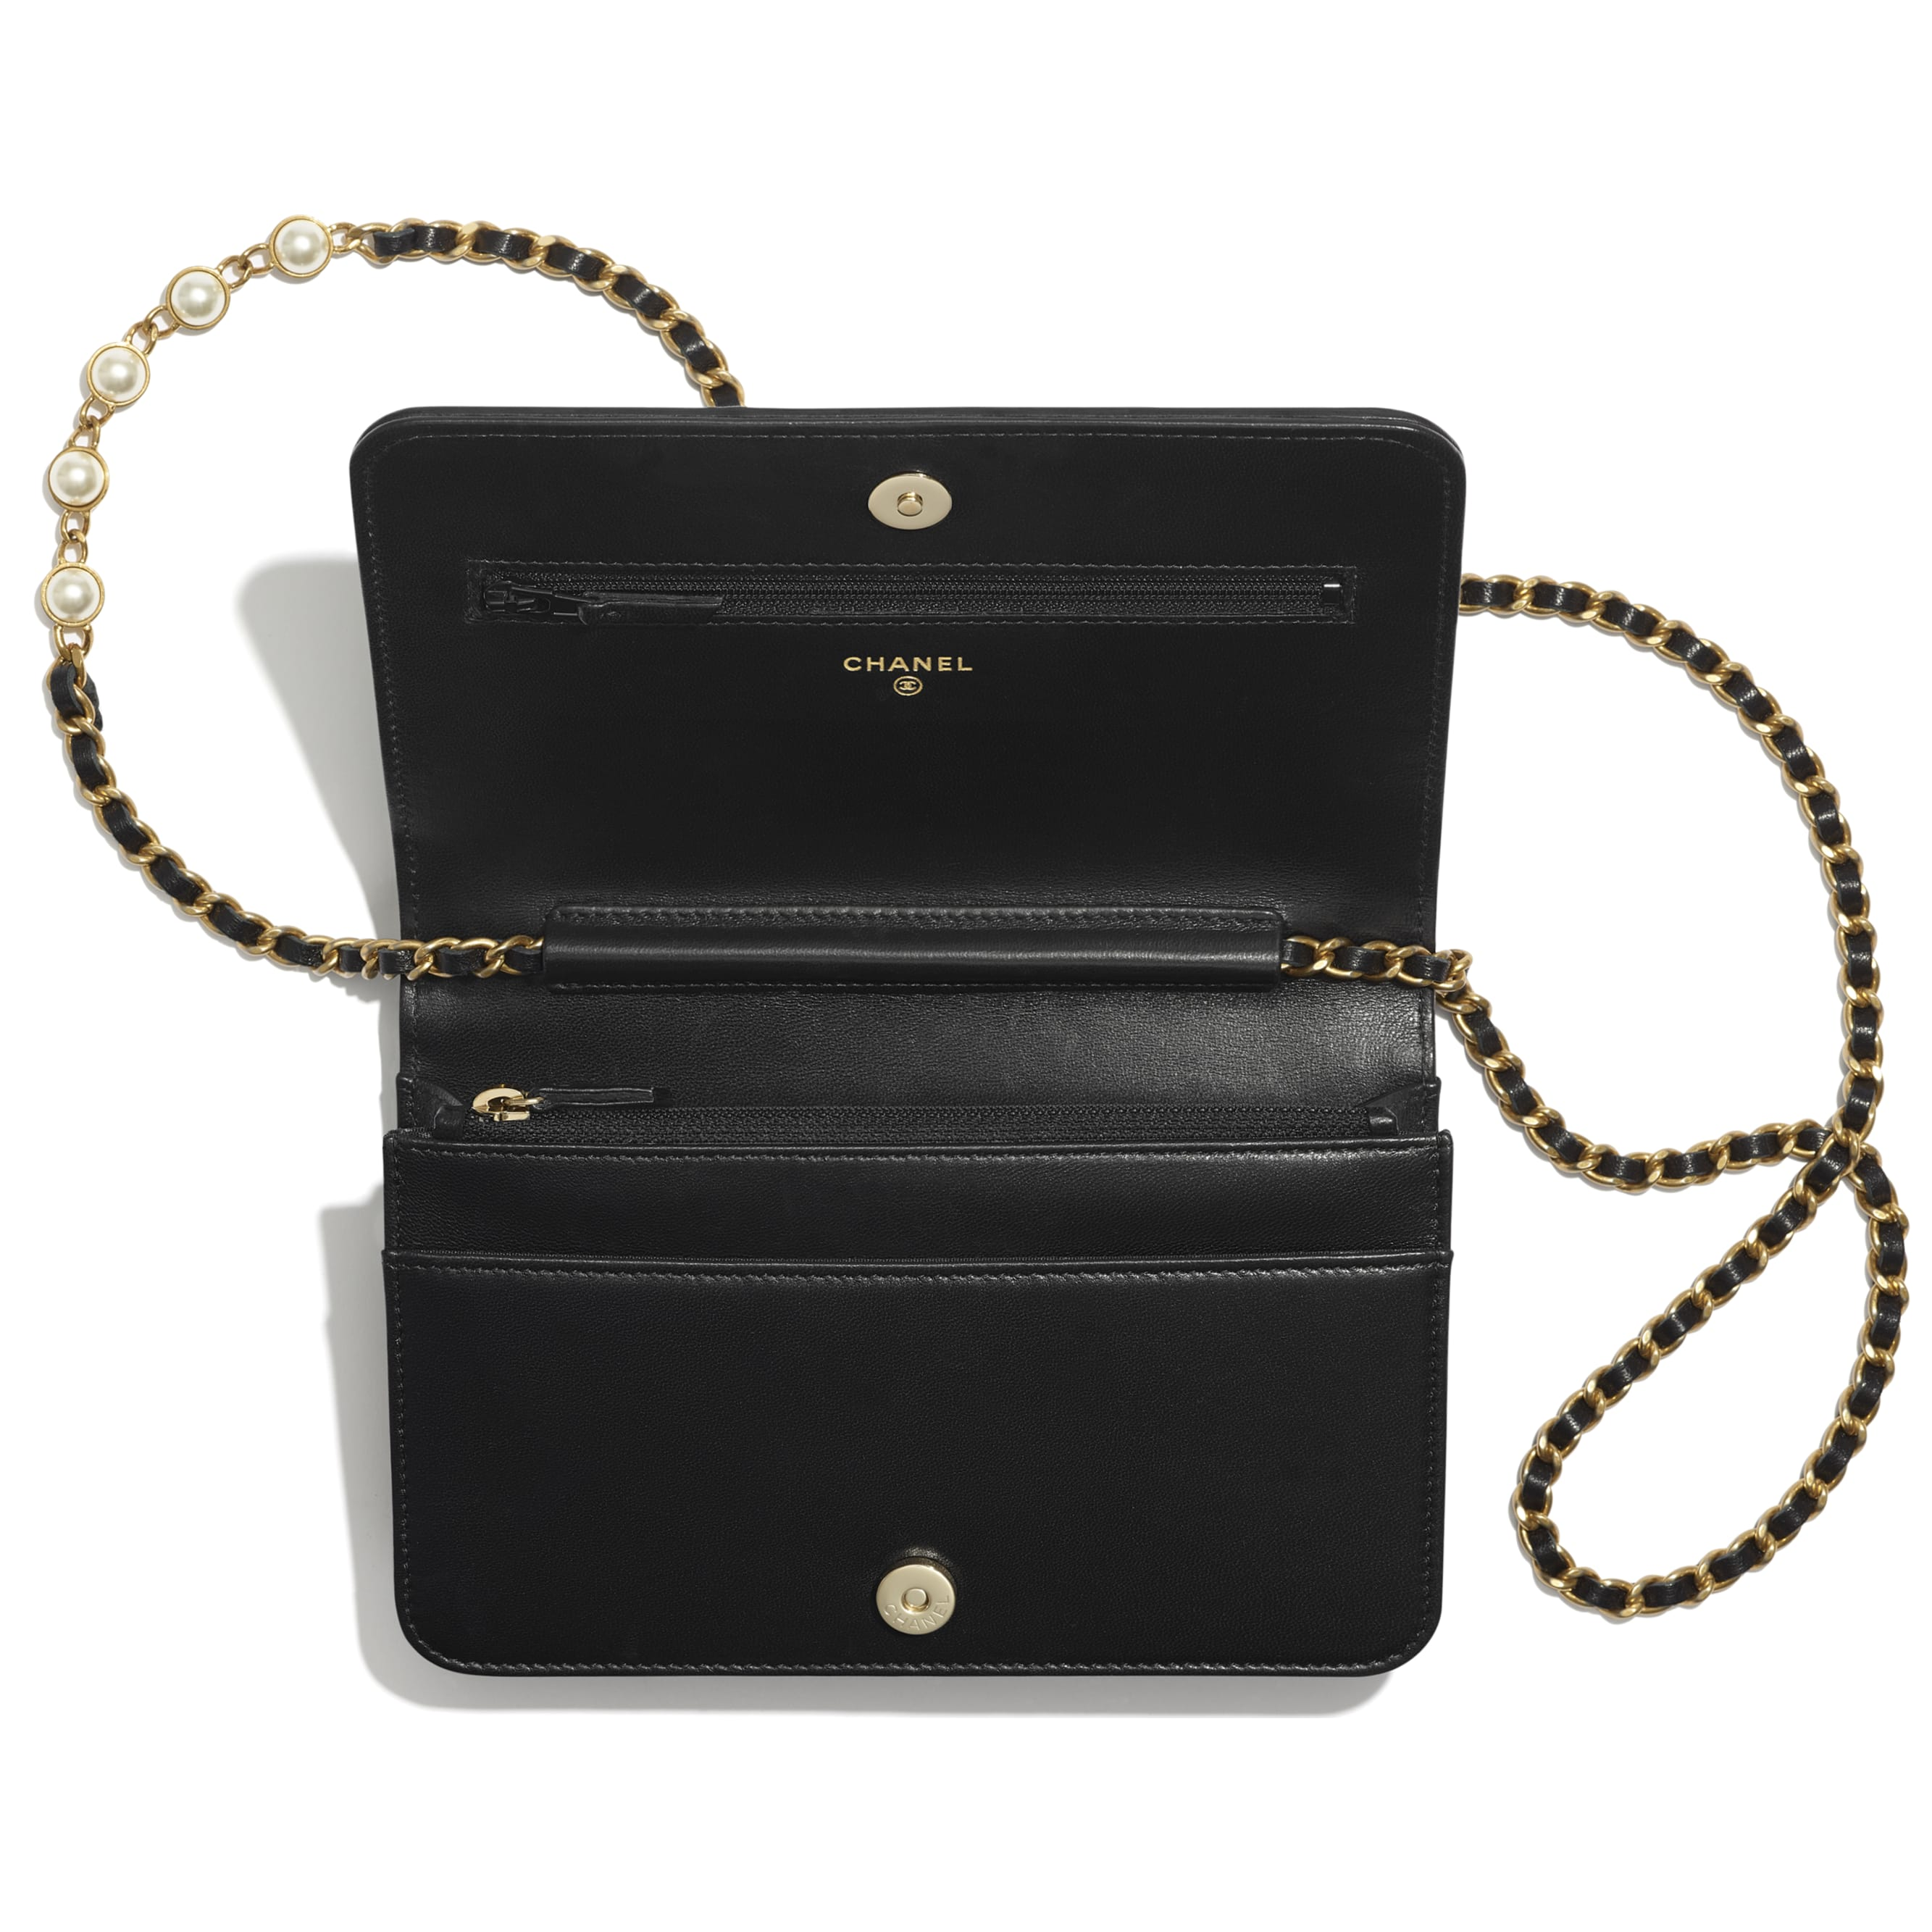 Wallet on Chain - Black - Lambskin, Imitation Pearls & Gold-Tone Metal - CHANEL - Other view - see standard sized version